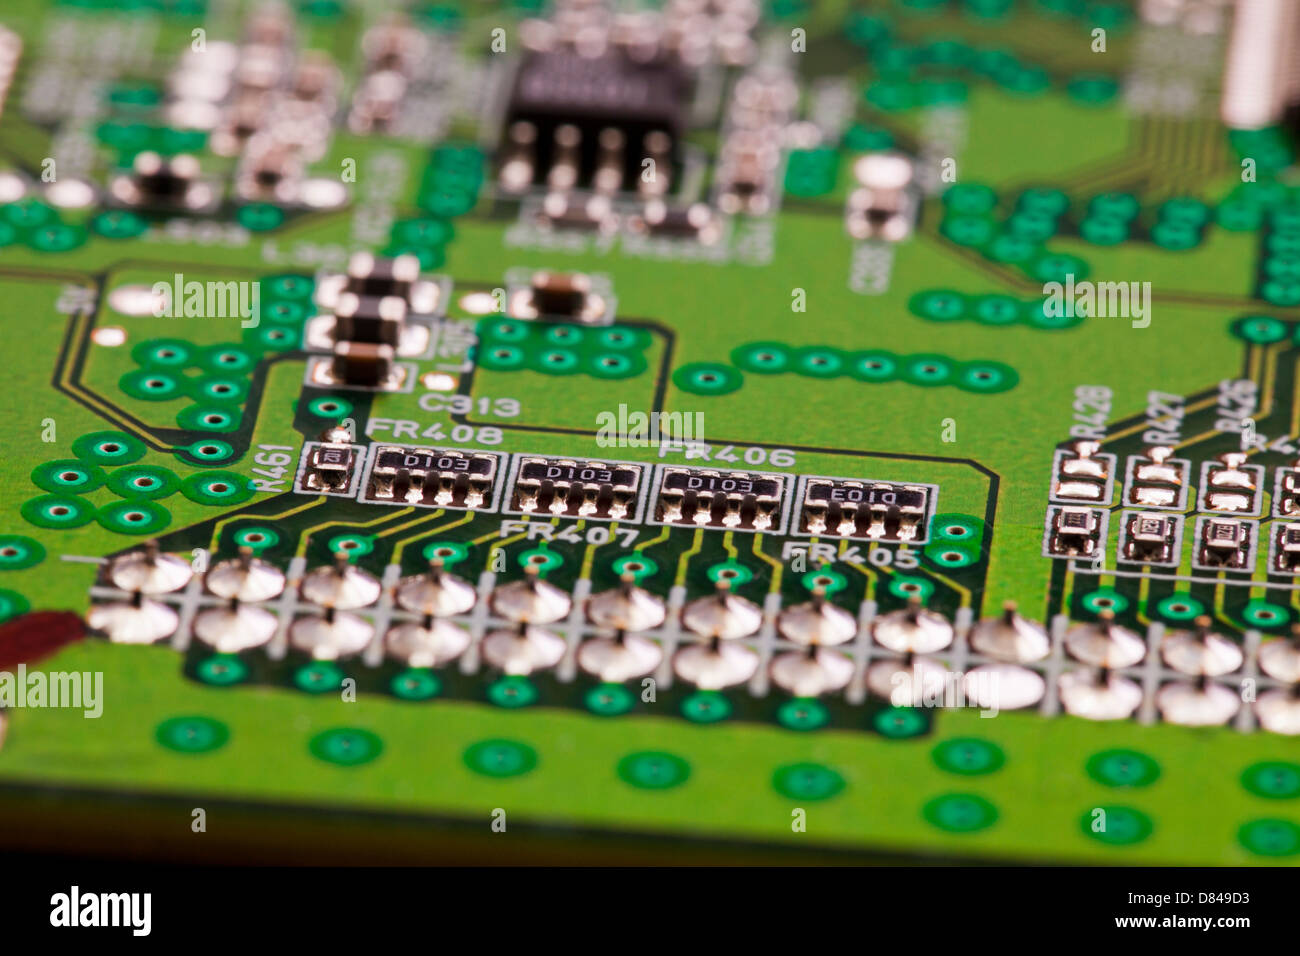 Closeup detail of circuit board - Stock Image